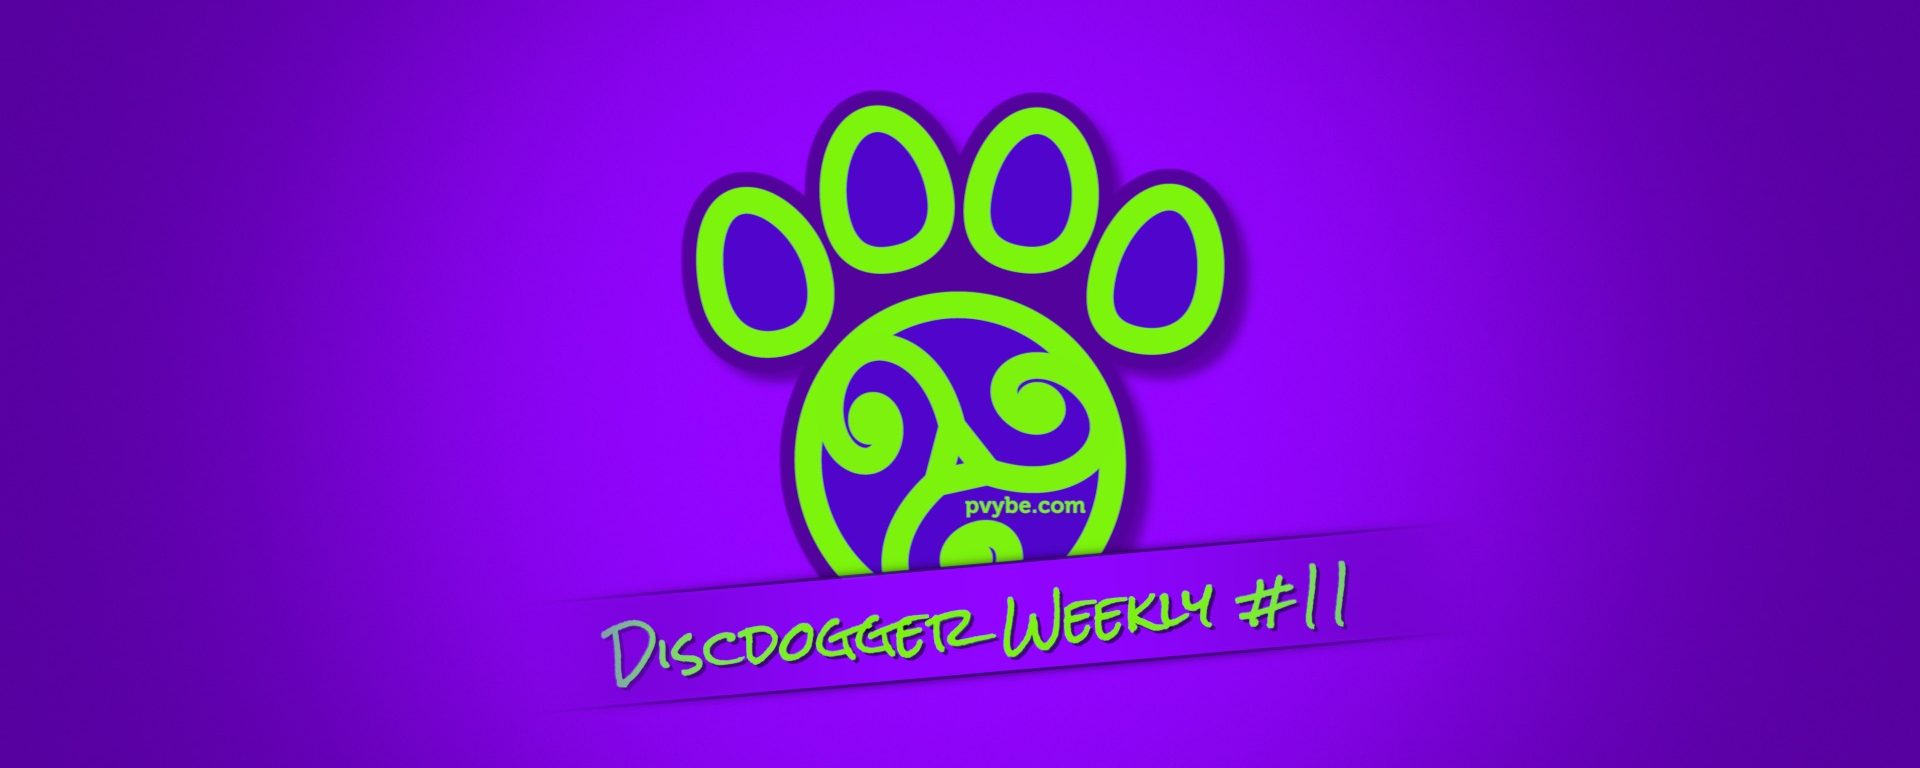 DiscDogger Weekly #11 – Welcome to Season 2